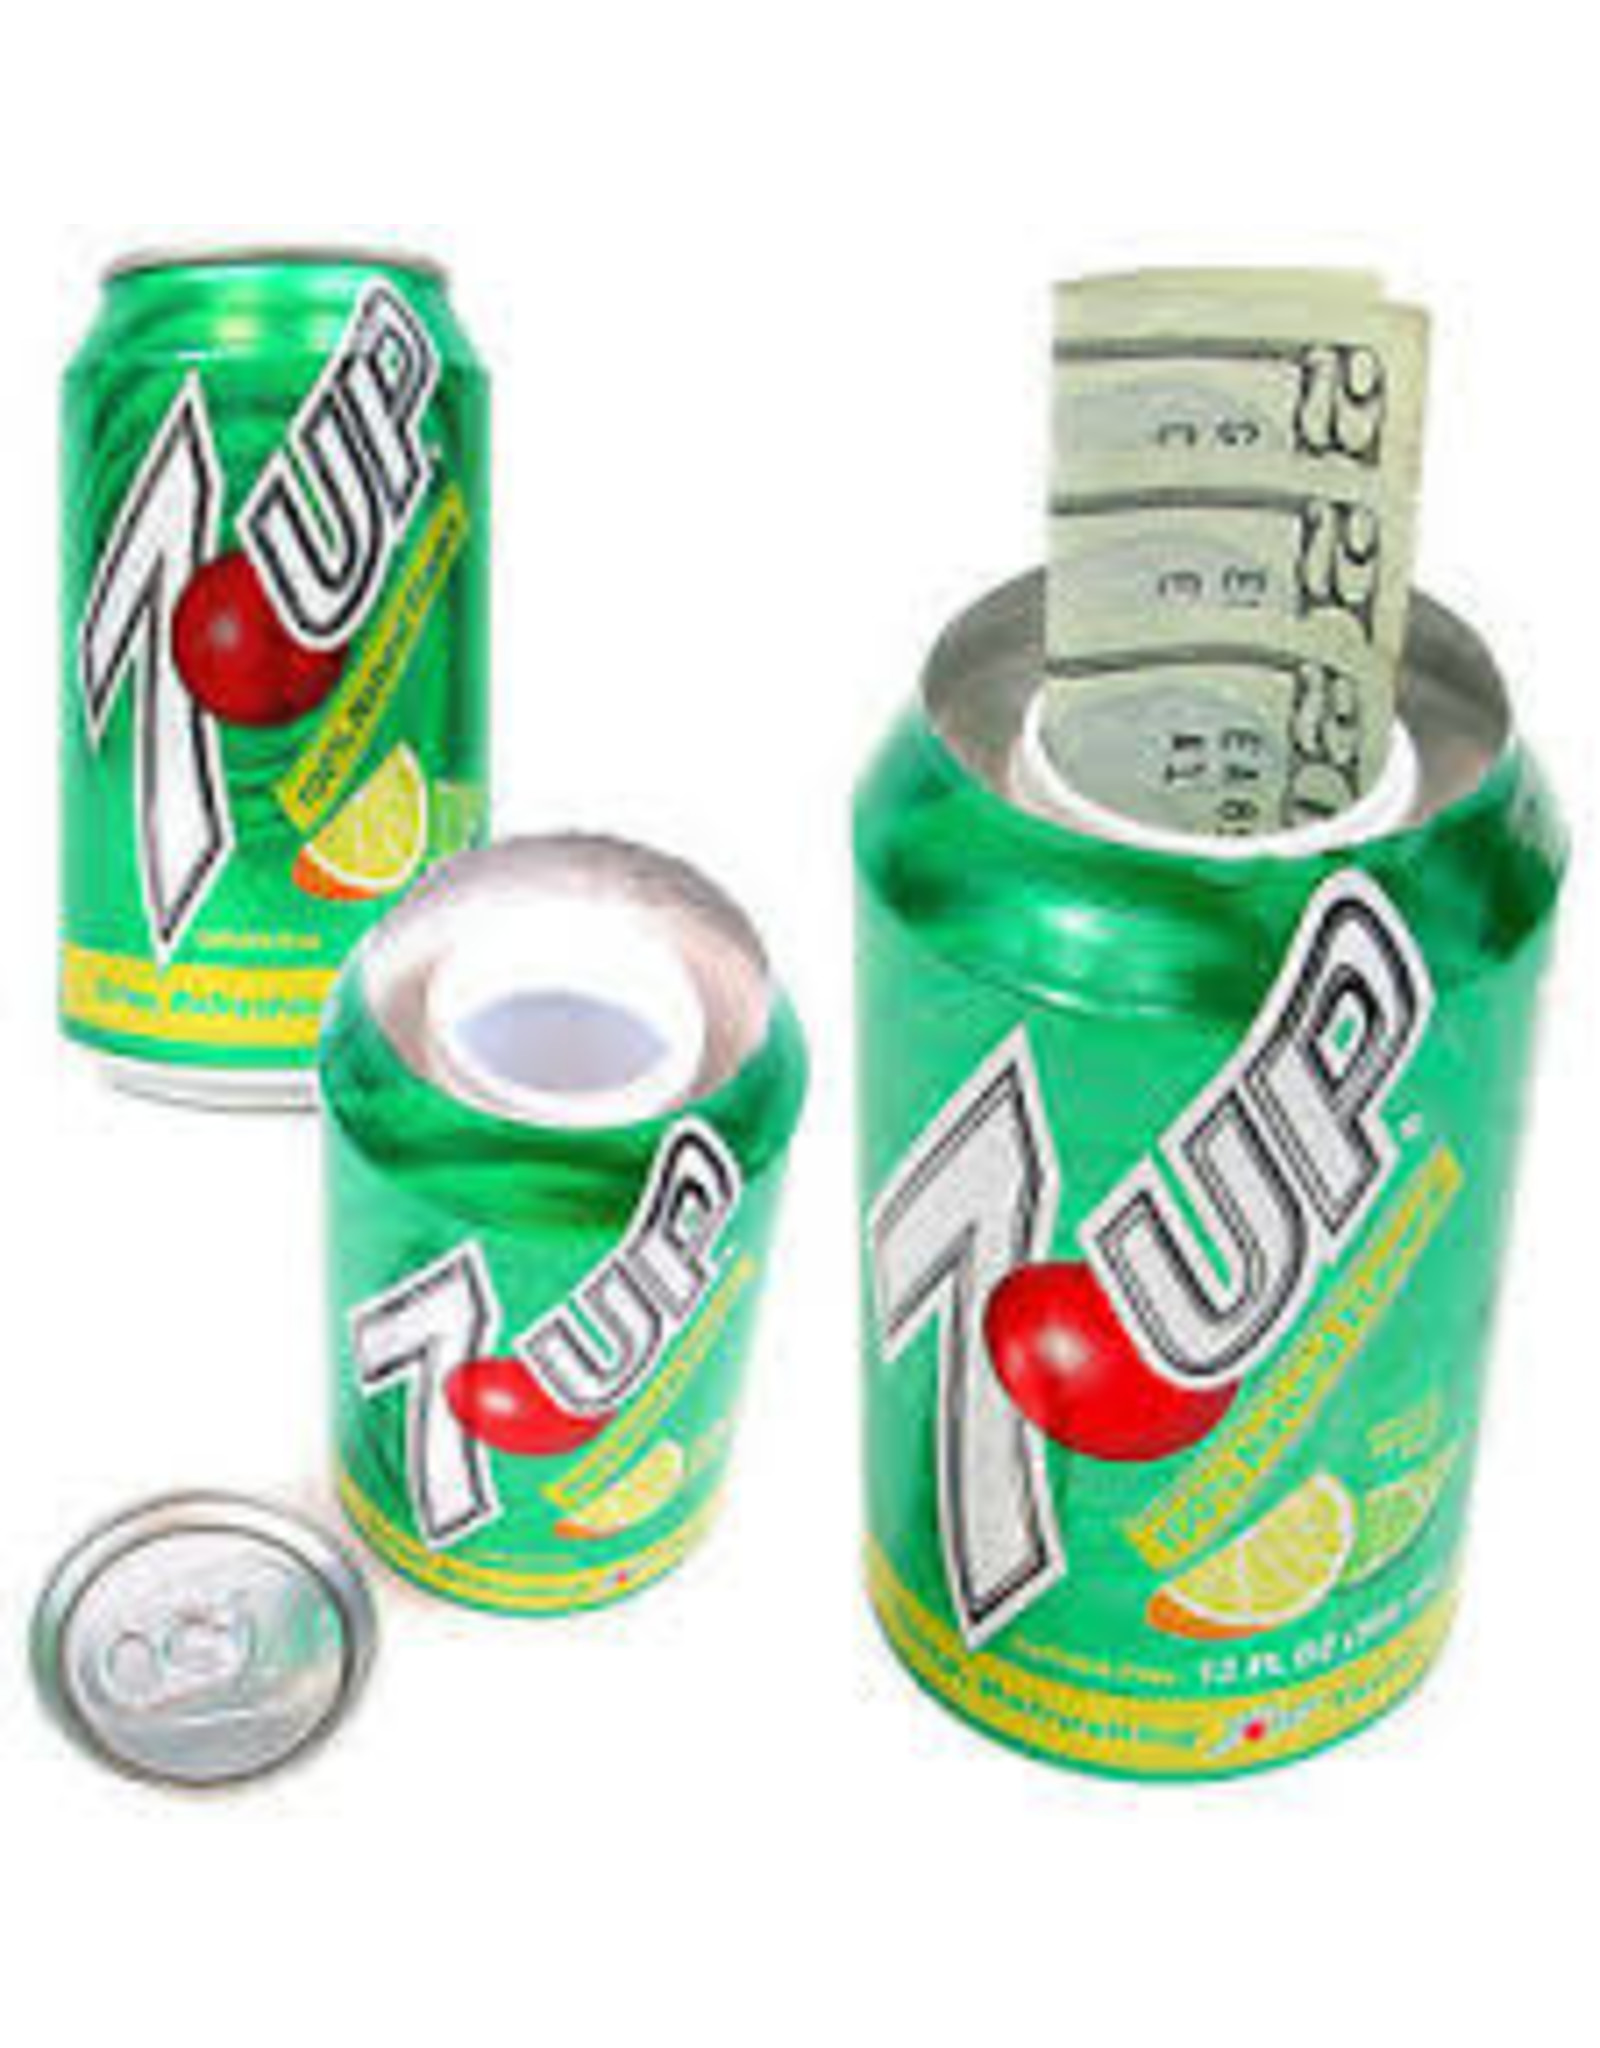 DIVERSION 7up hide a can